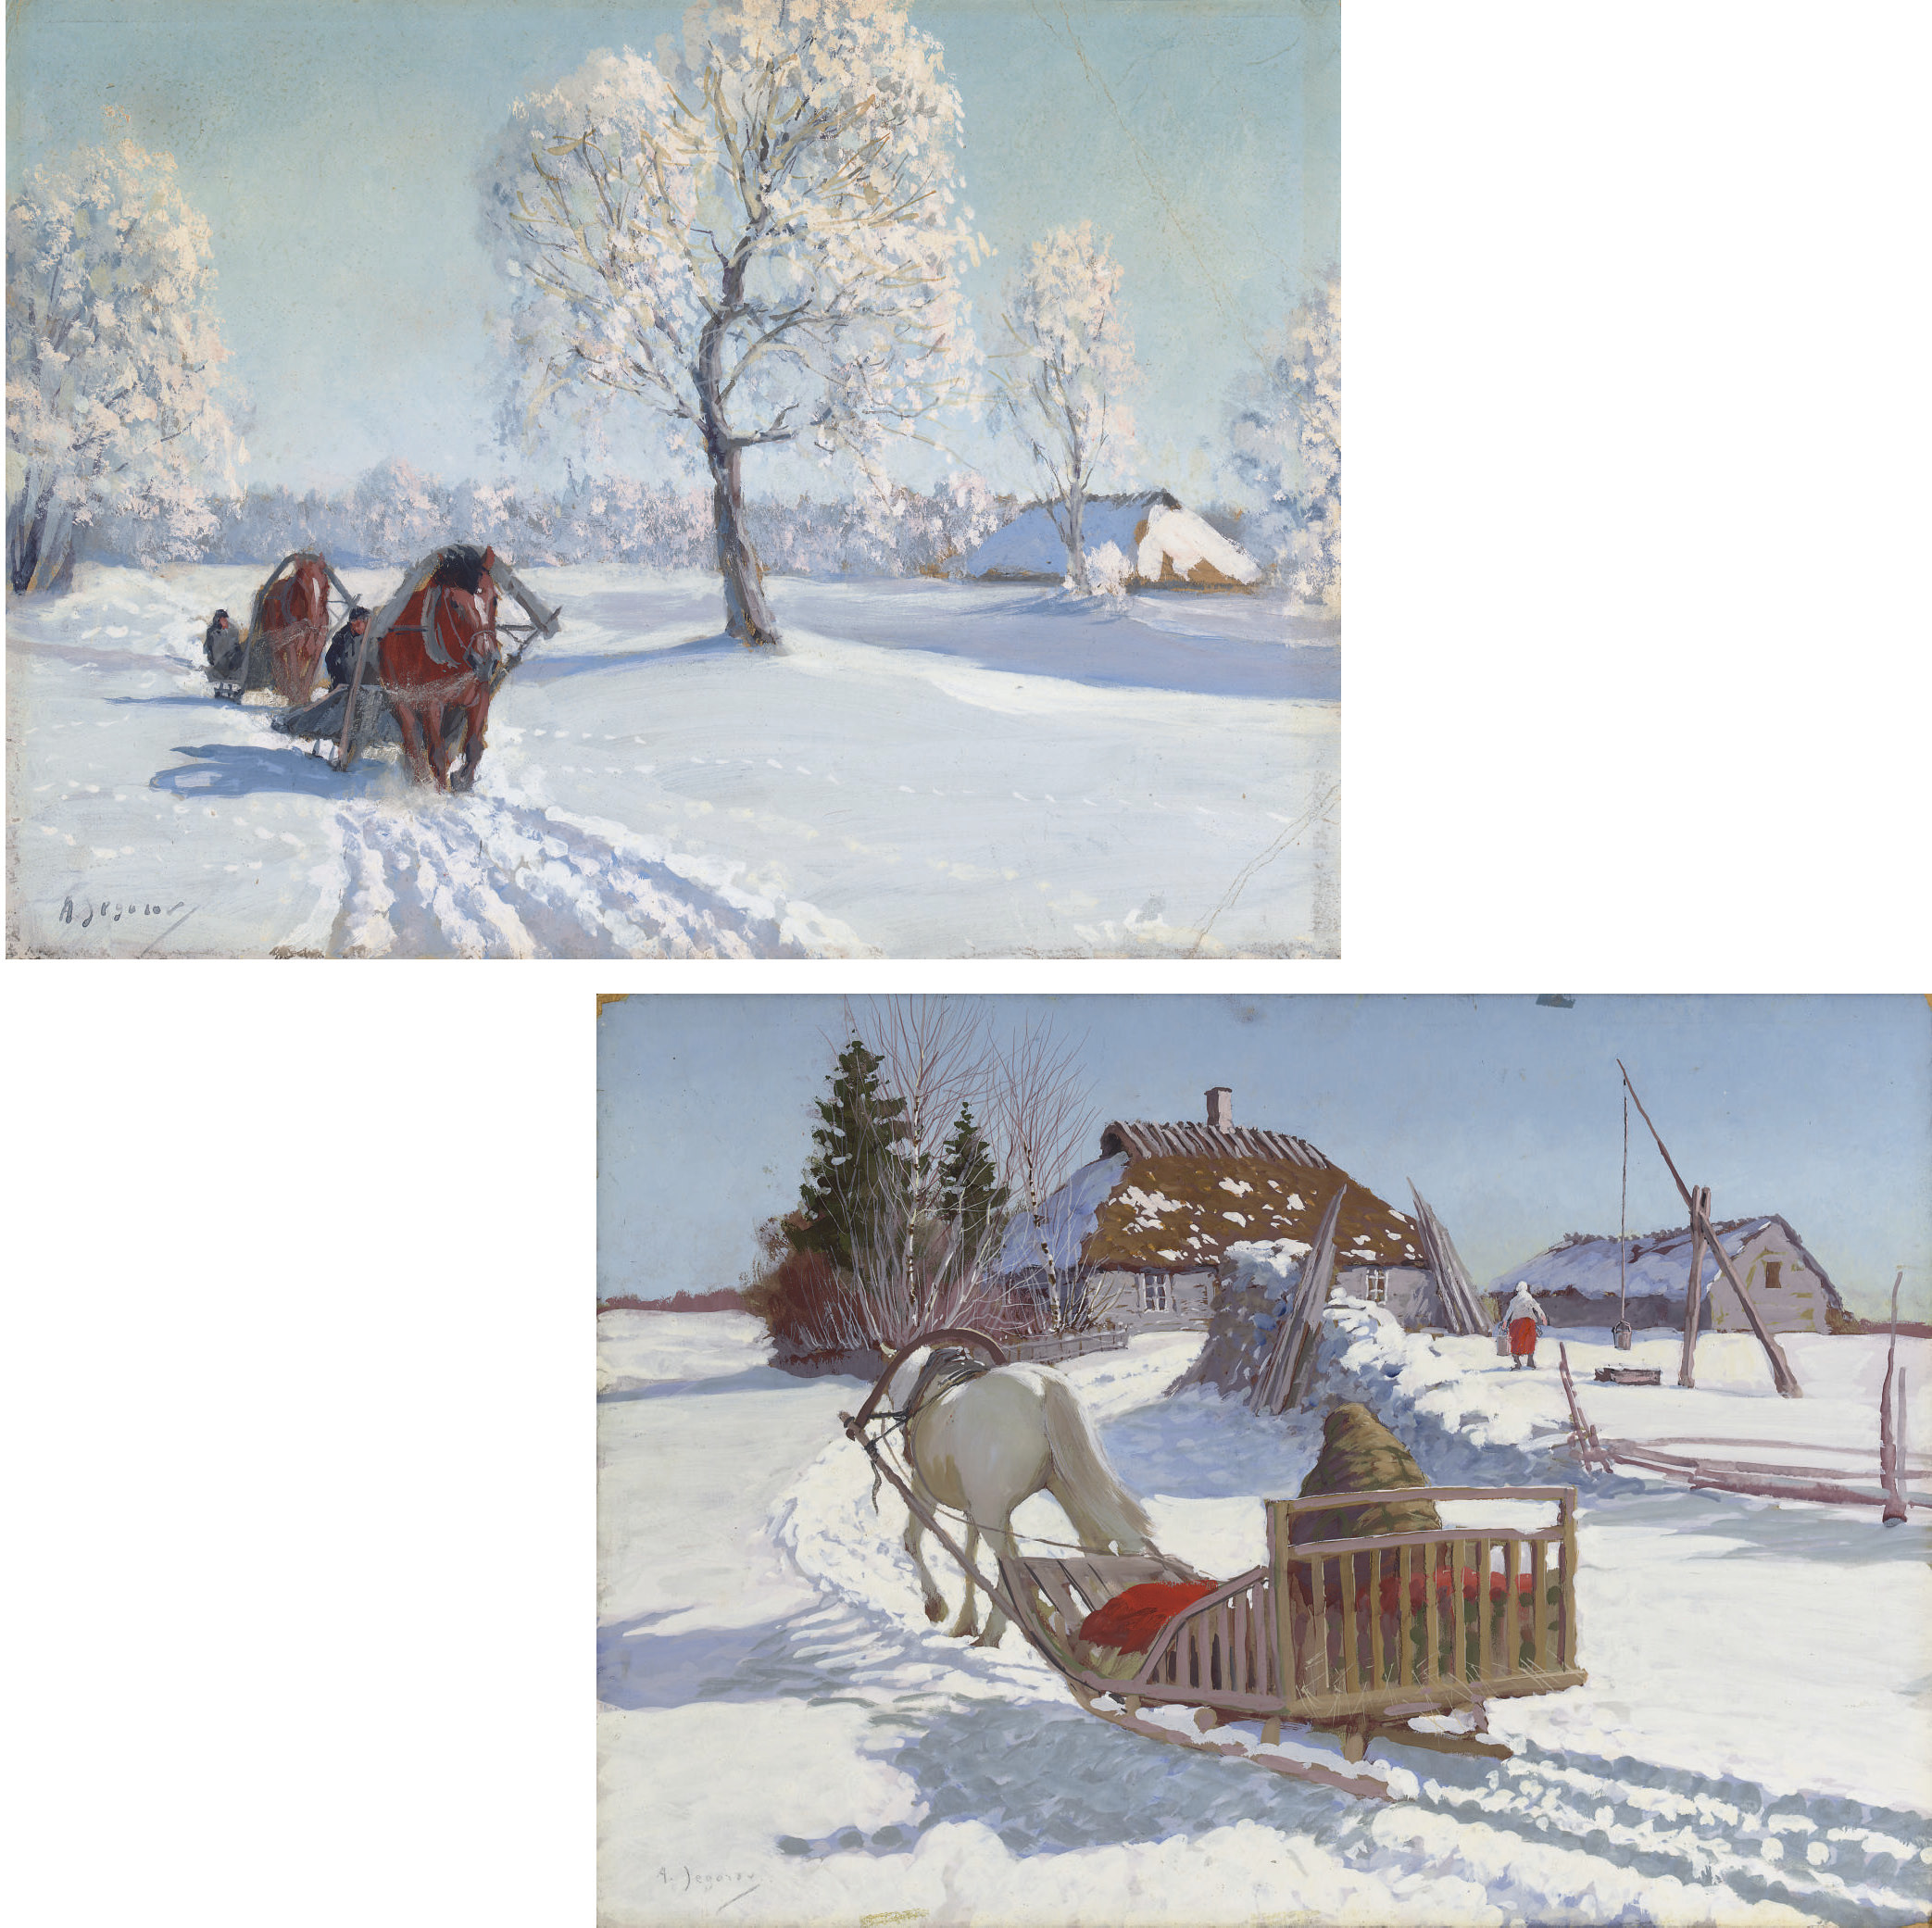 A sleigh returning to a farmstead; and Two sleighs on a winter track